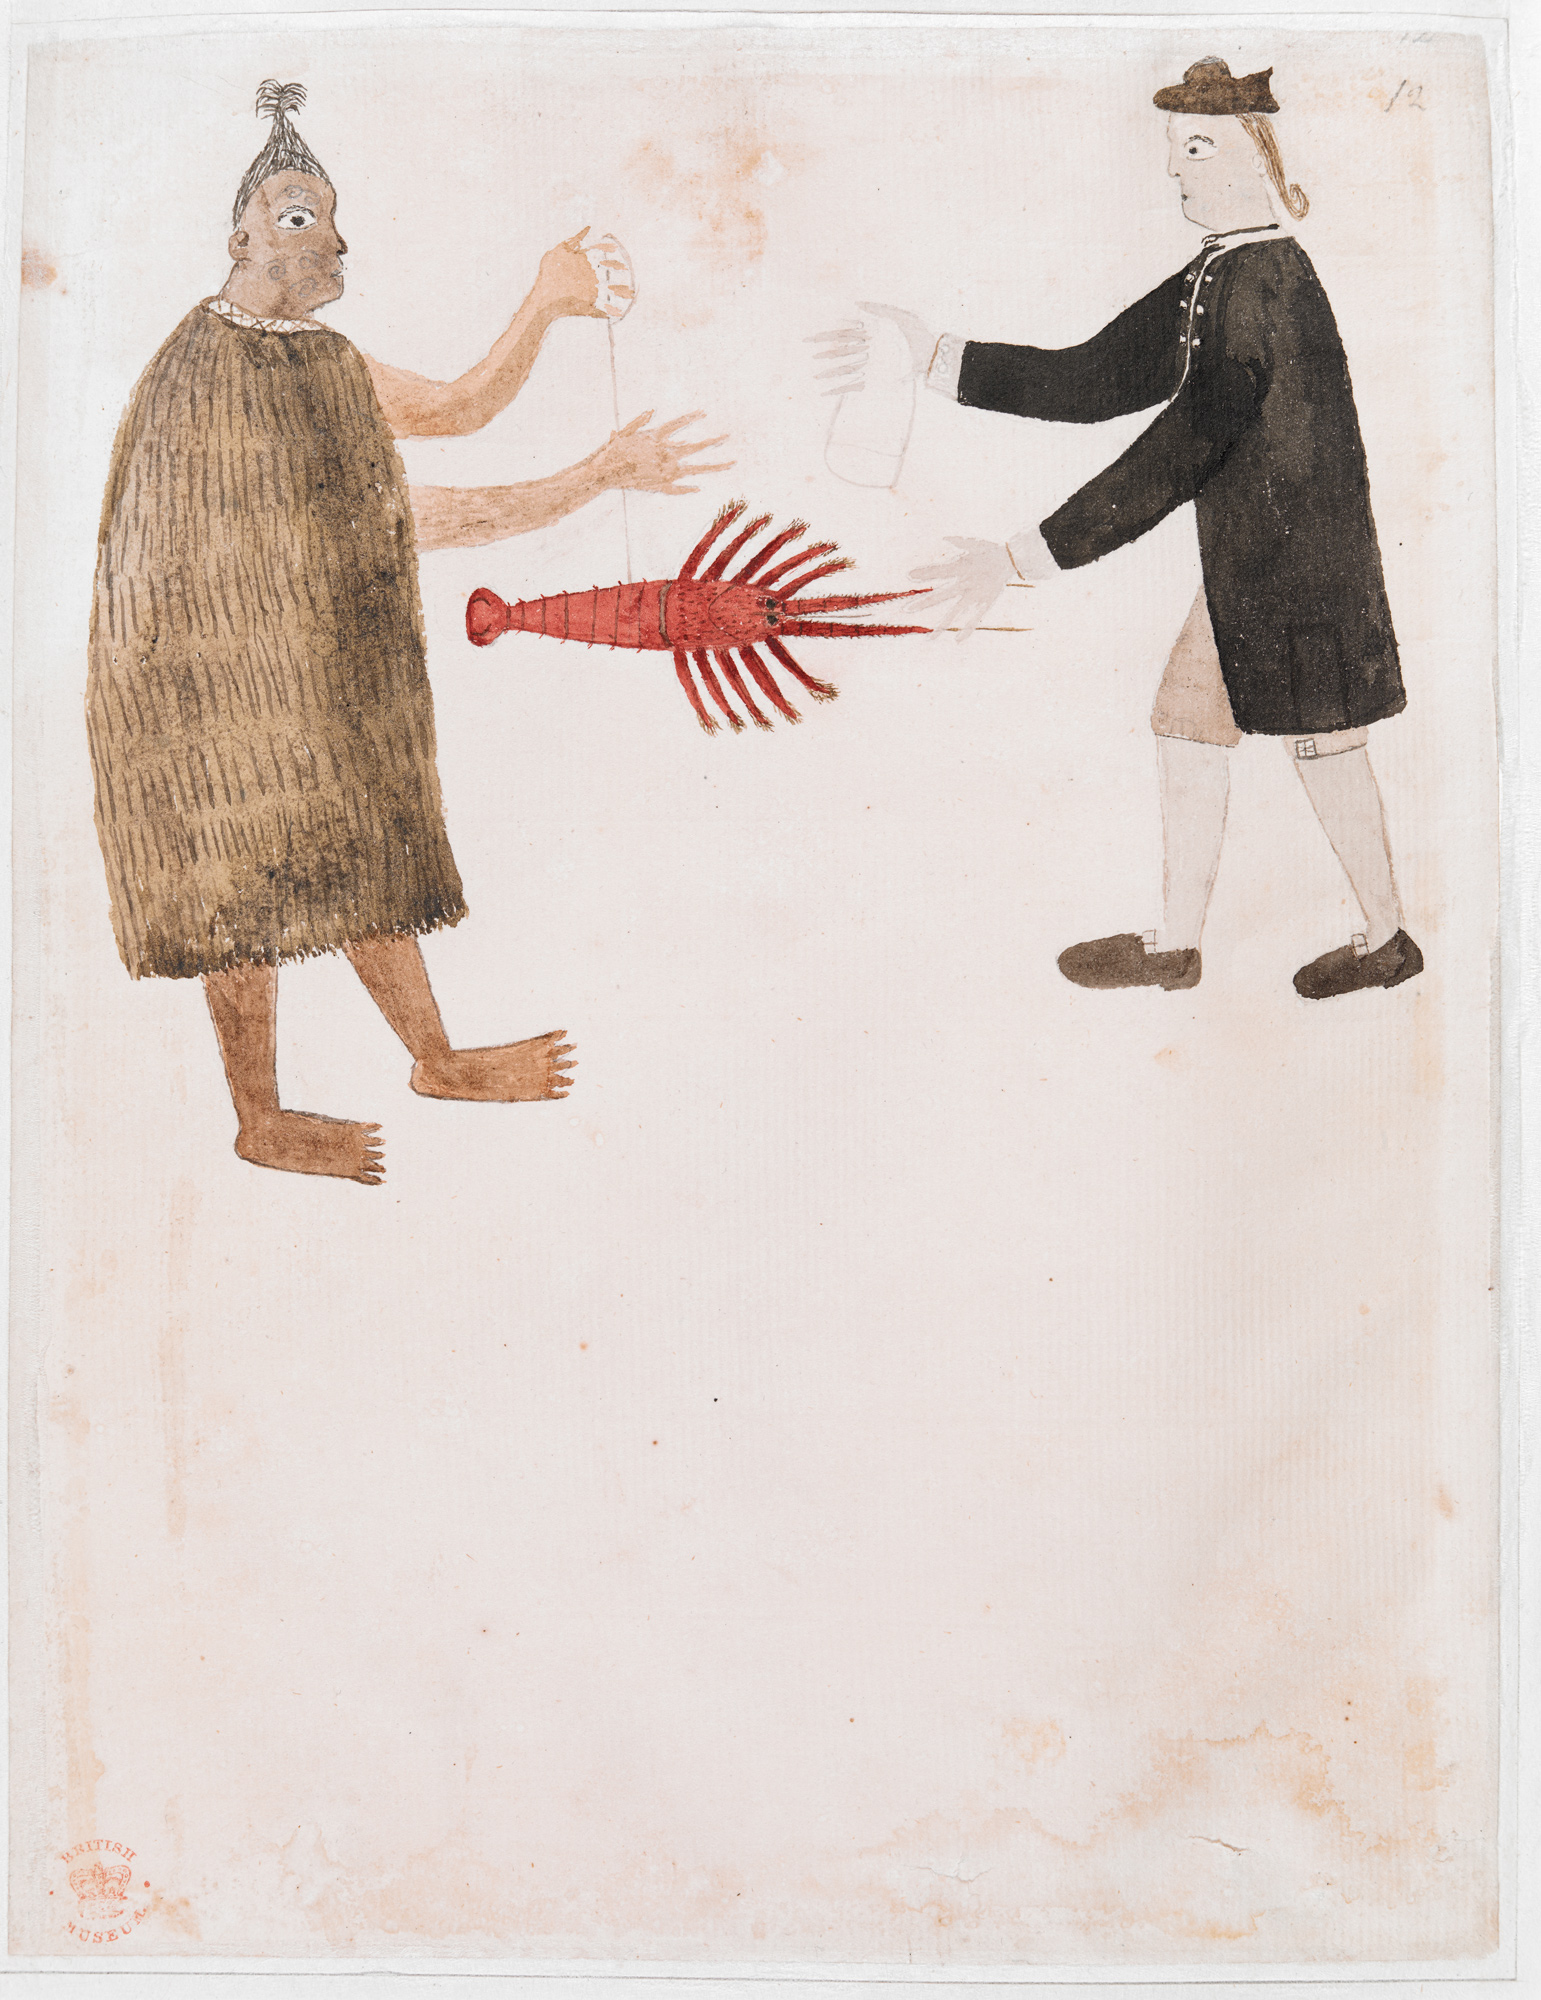 Maori trading a crayfish with Joseph Banks